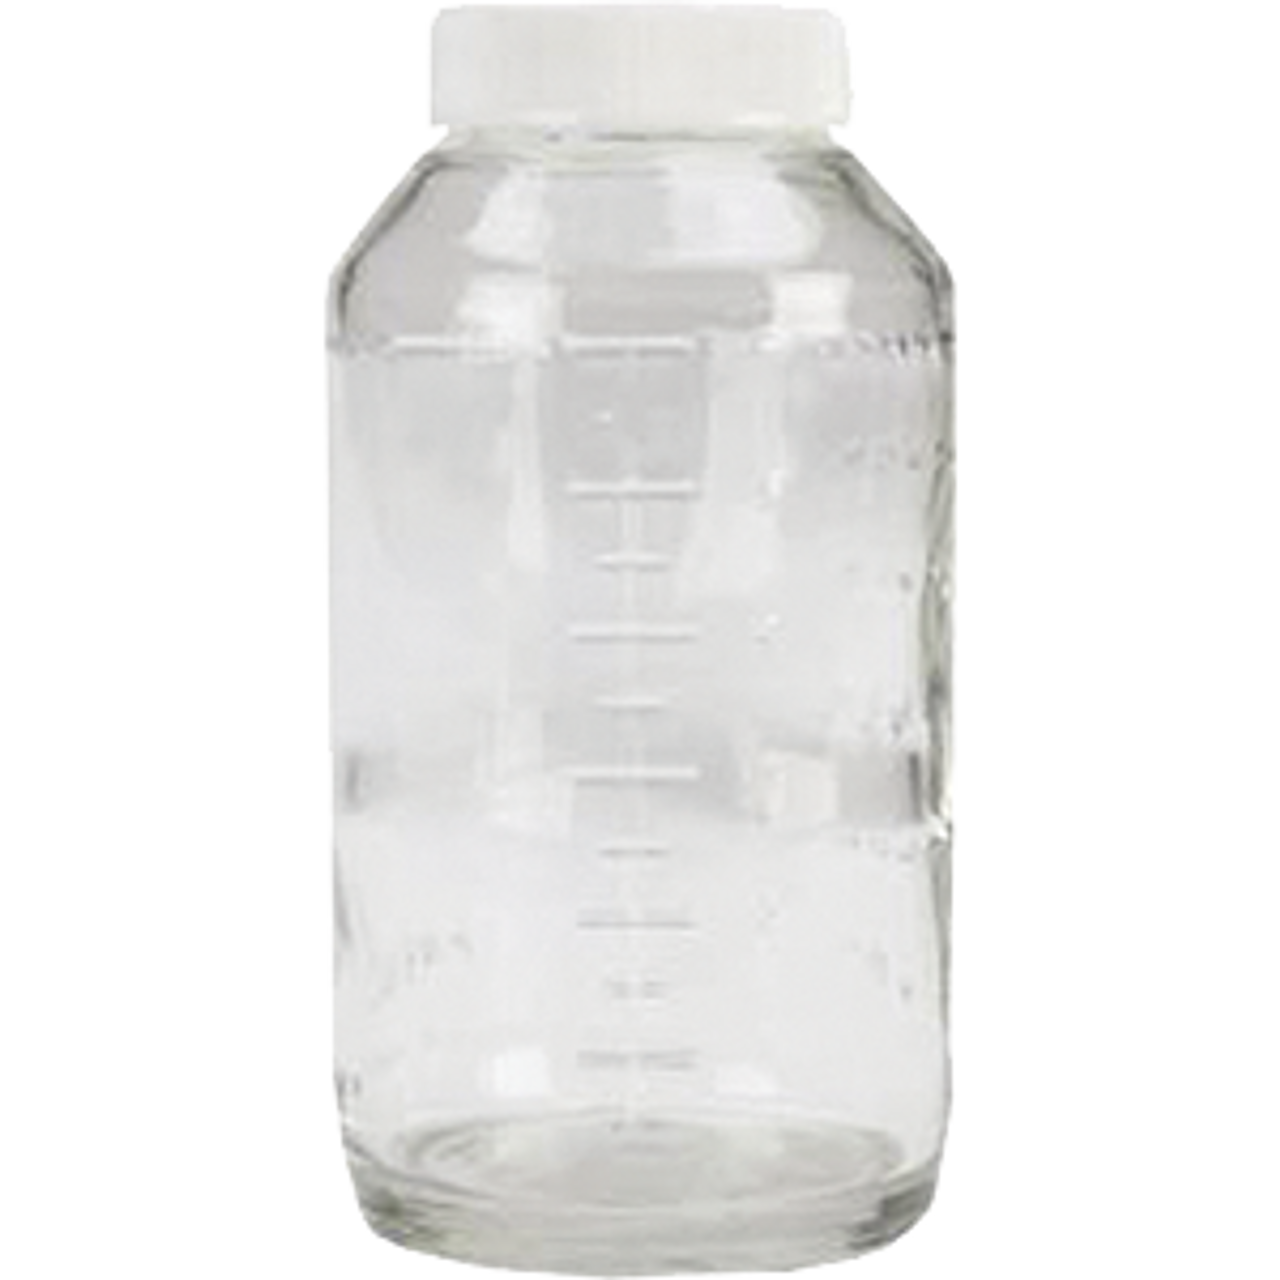 PREVAL 269 GLASS BOTTLE